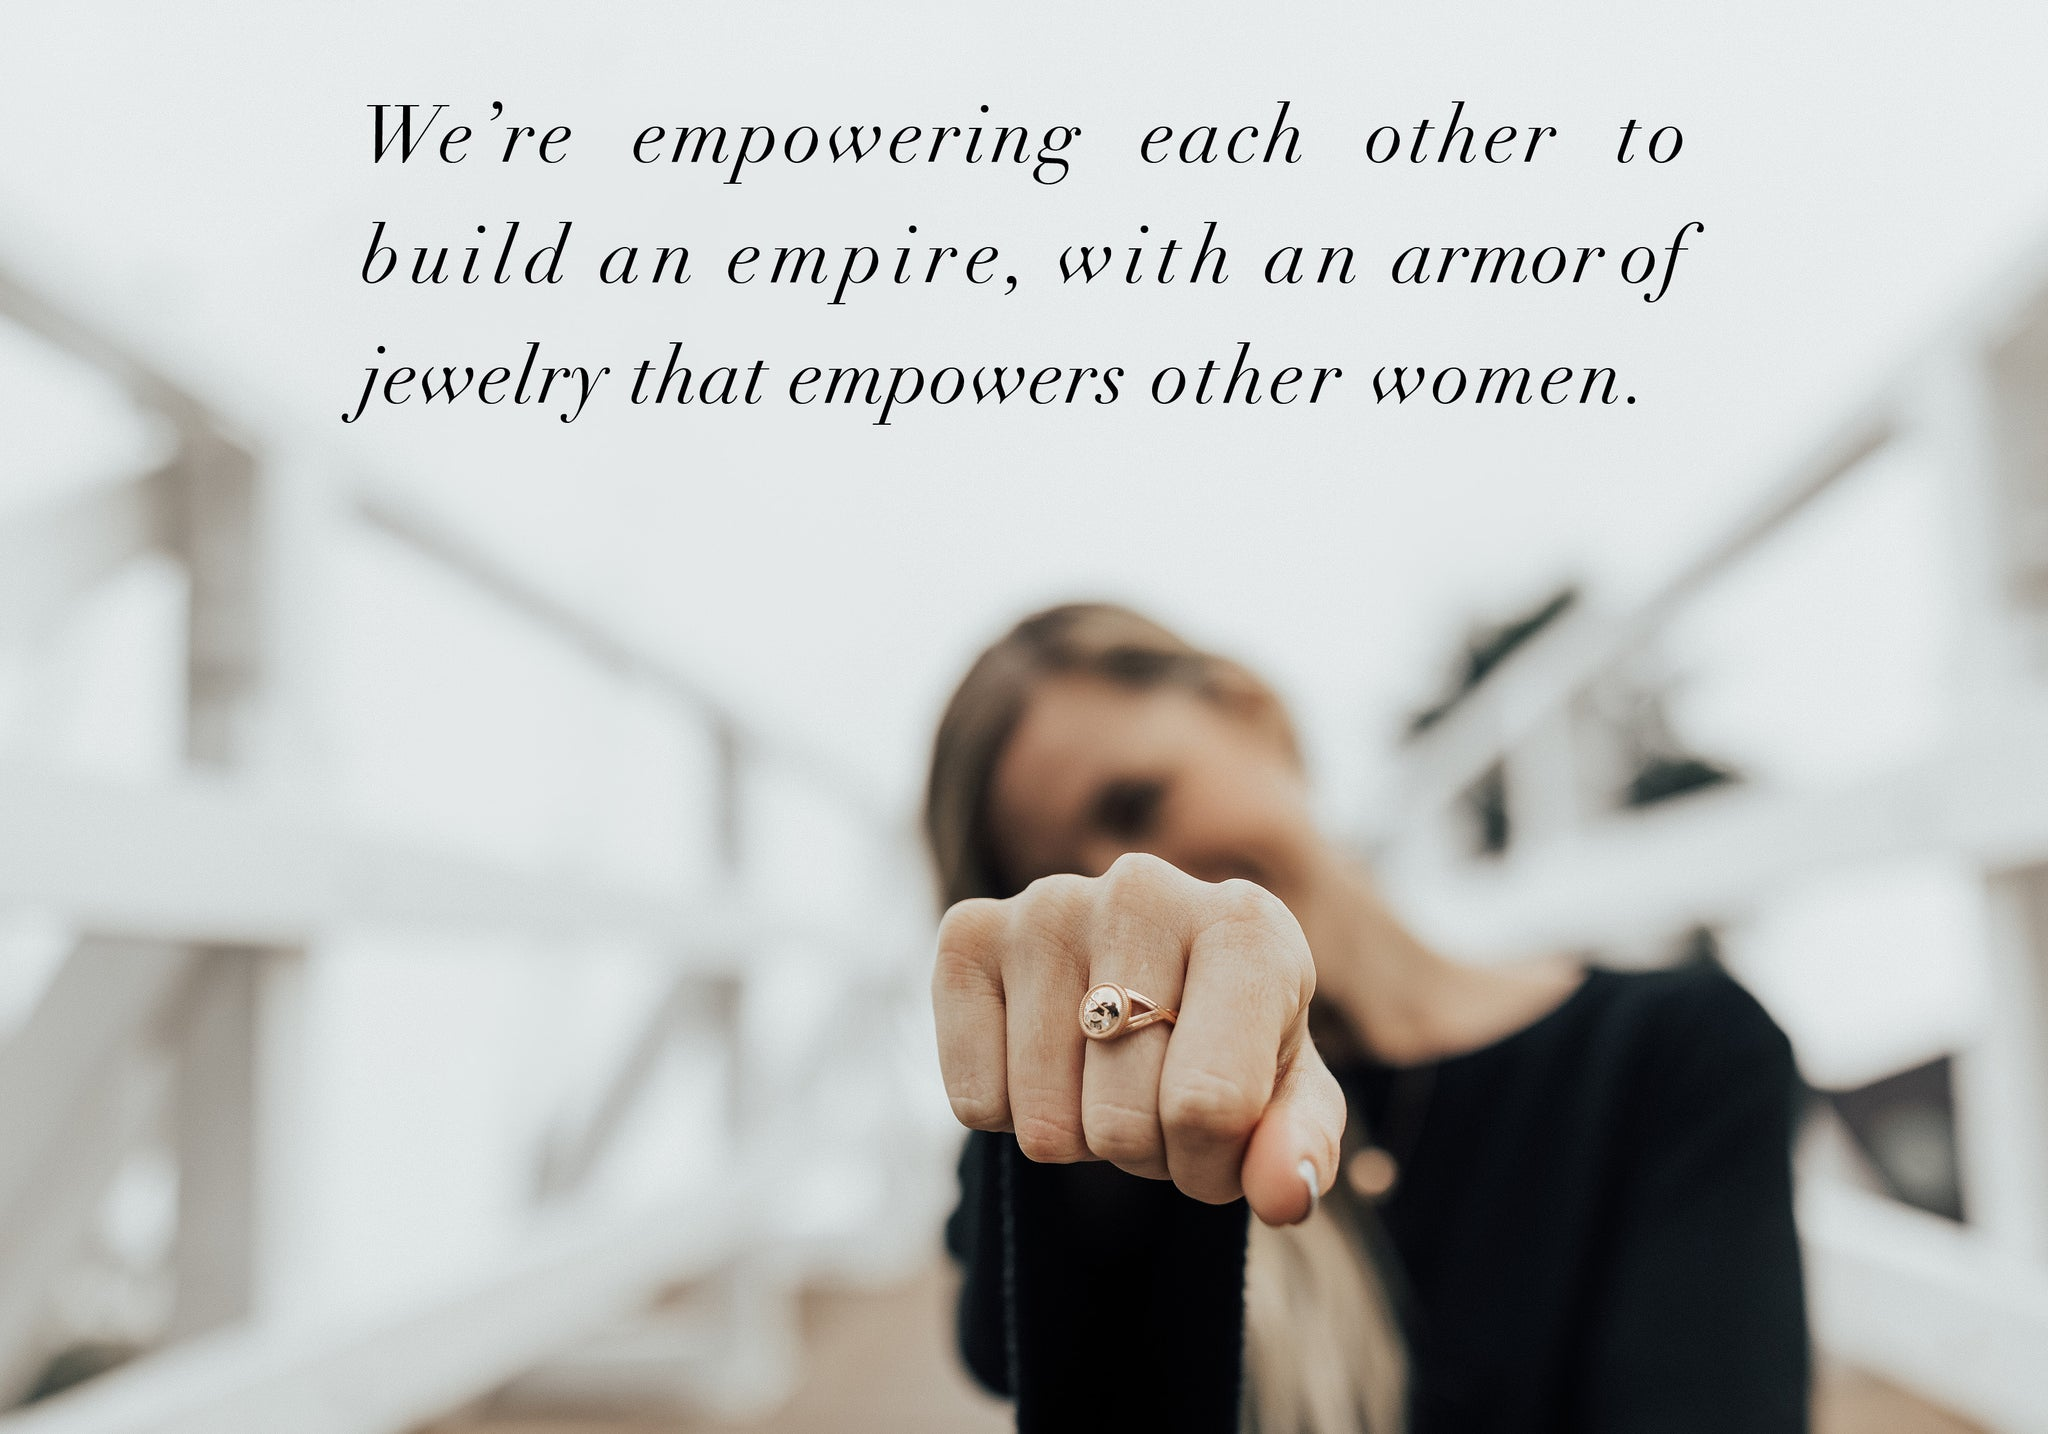 We're empowering each other to build an empire, with an armor of jewelry that empowers other women.